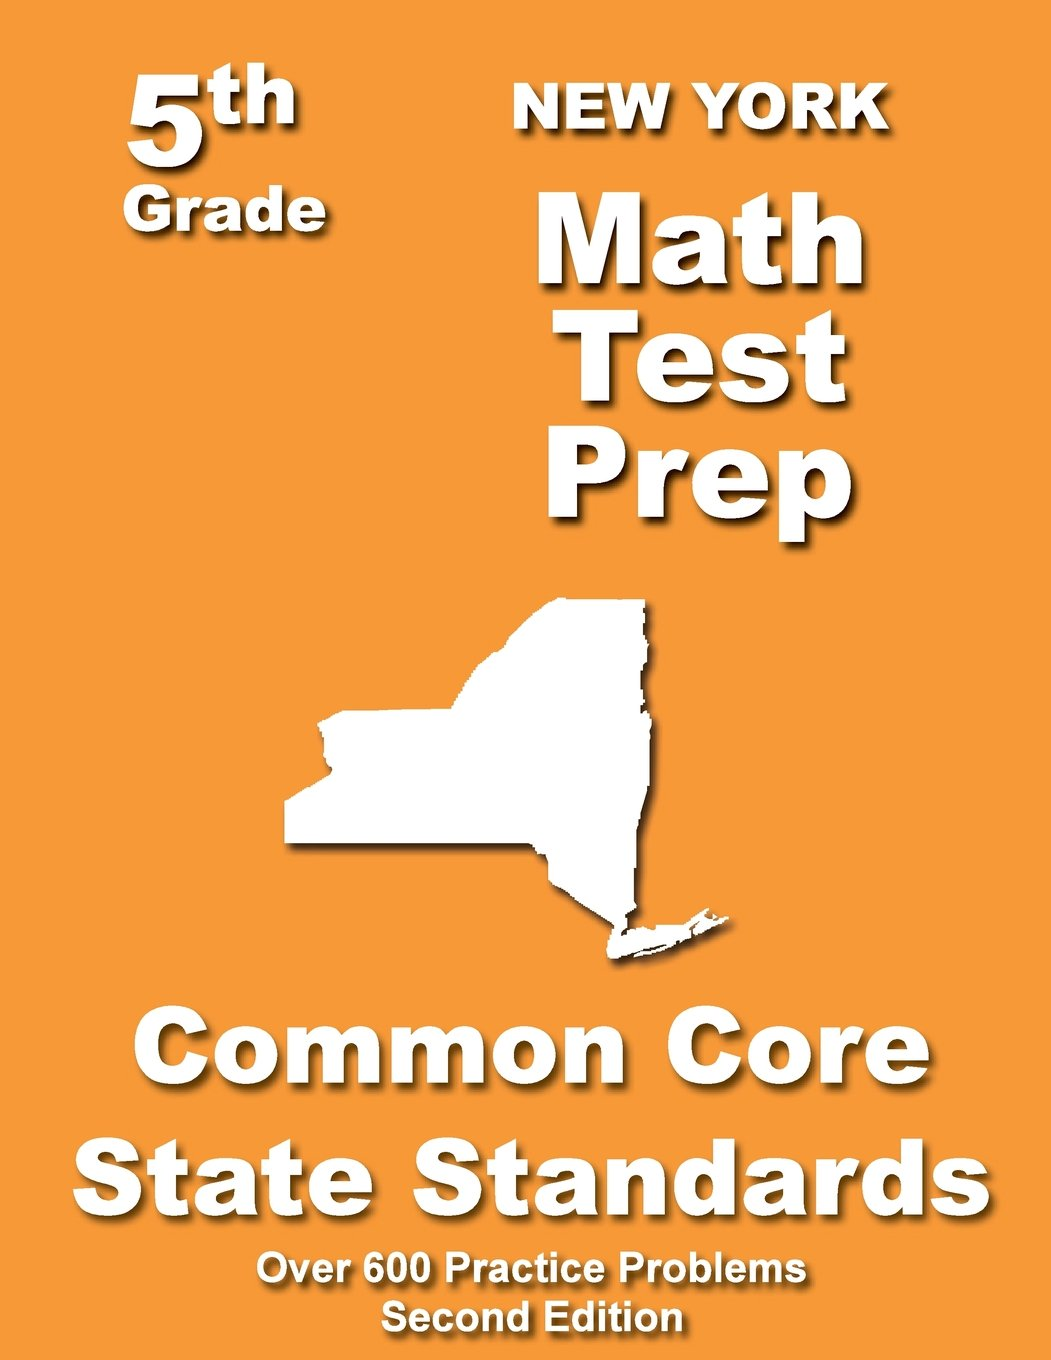 New York 5th Grade Math Test Prep Common Core Learning Standards Paperback July 12 2013